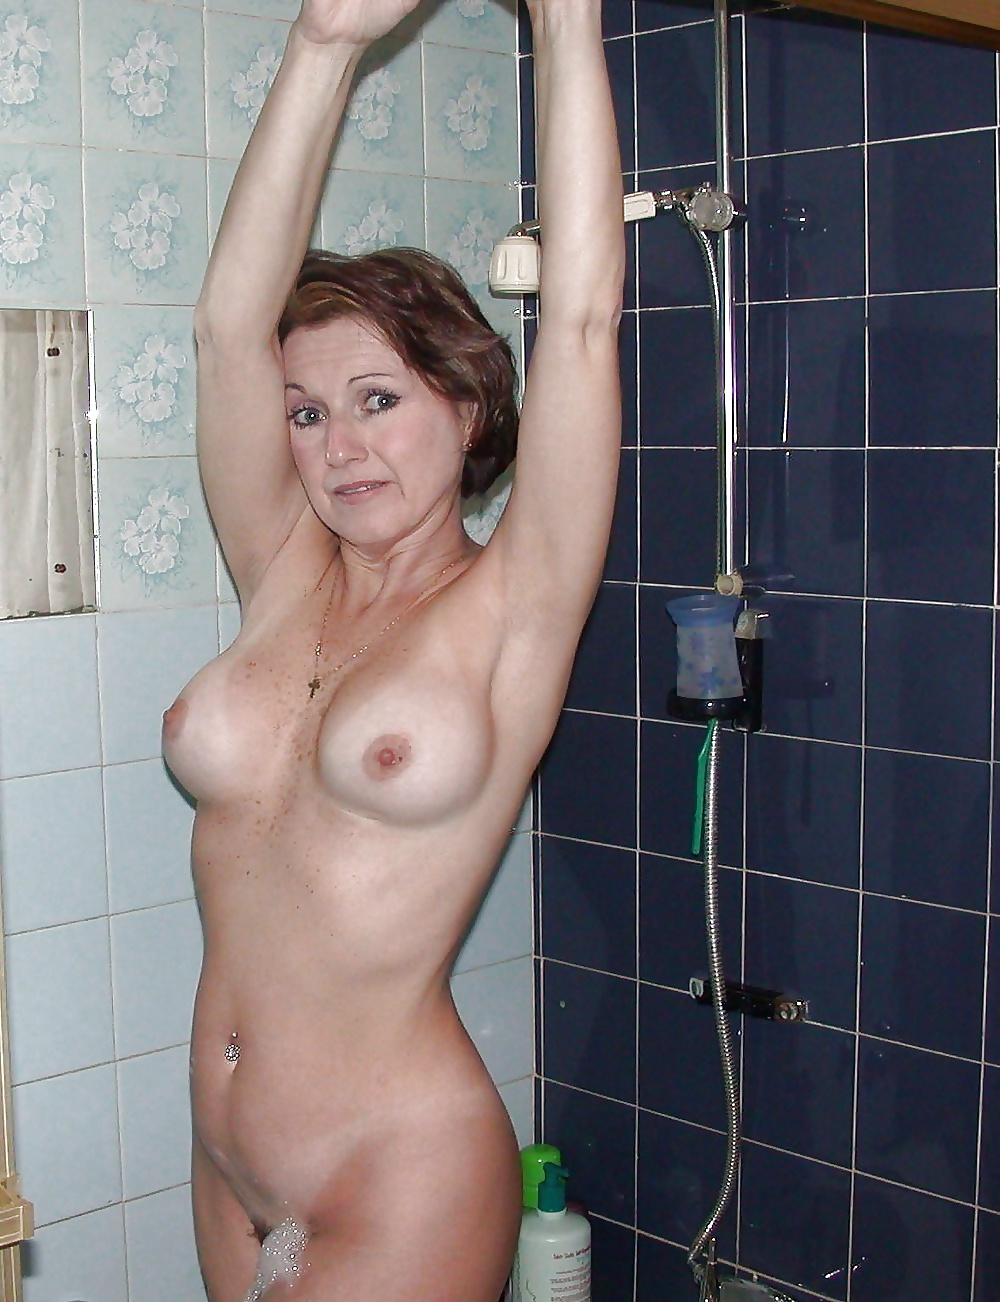 Surprised In The Shower